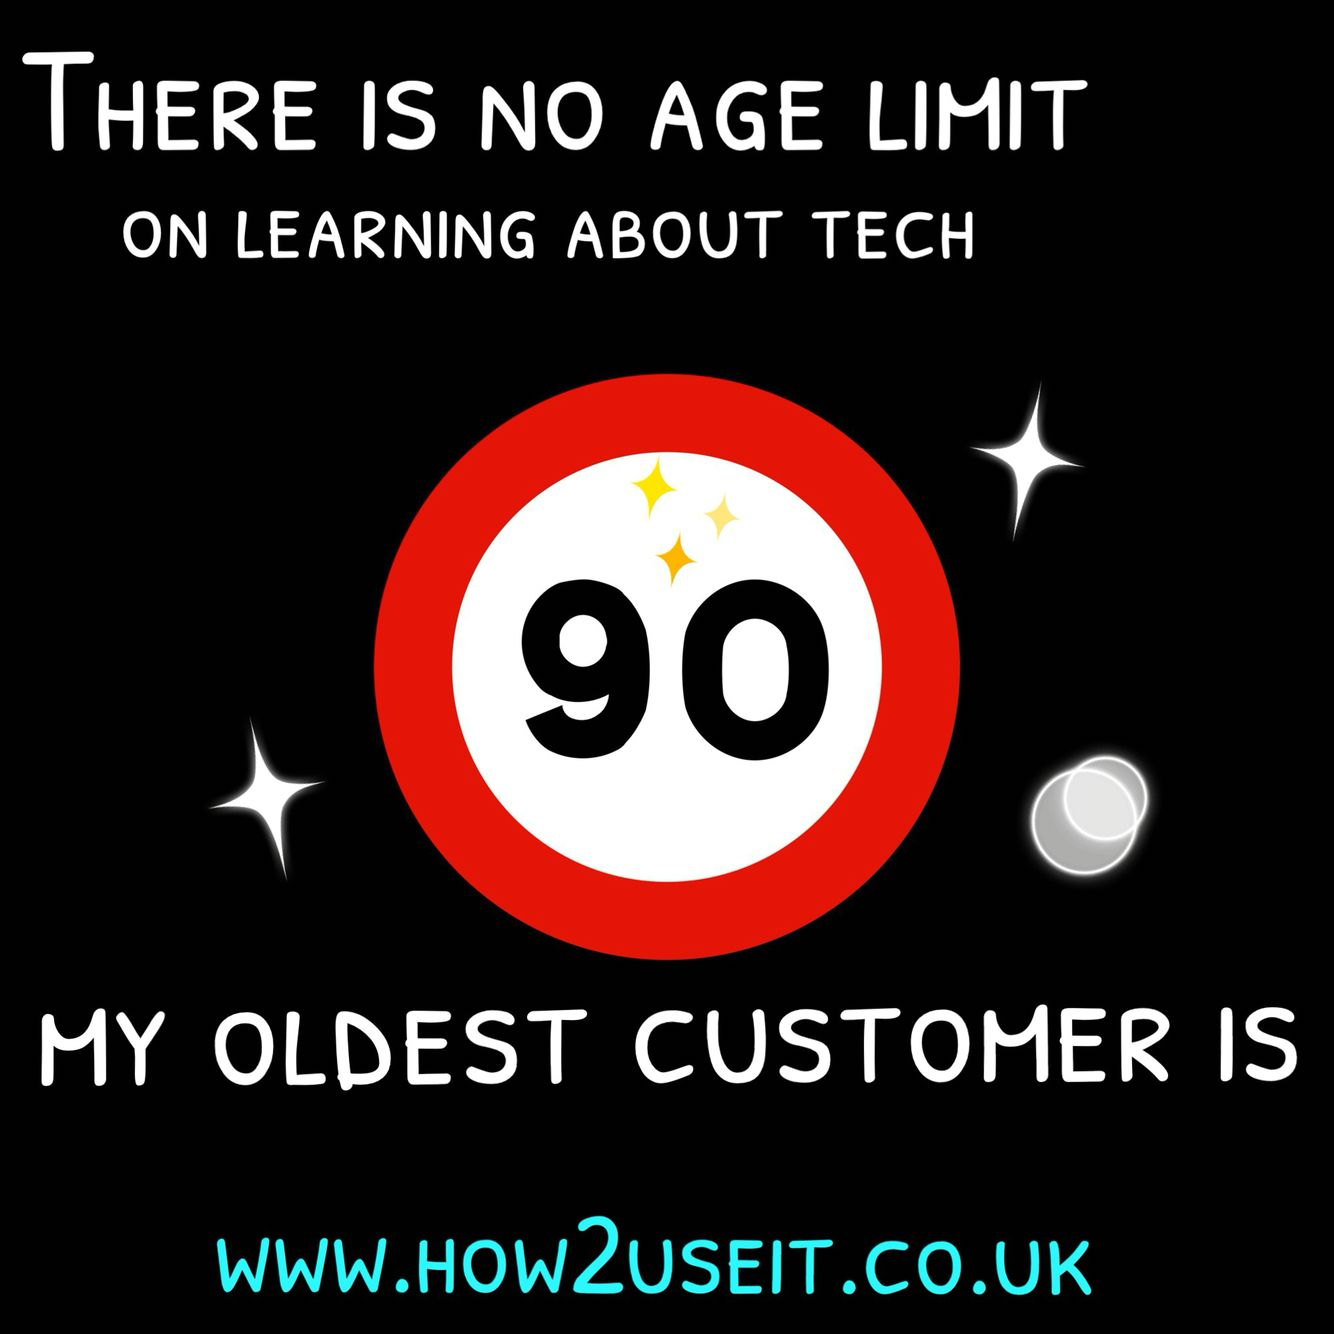 Contrary to popular belief there is no #agelimit to learning #technology Oldest Cust is 90!   www.how2useit.co.uk